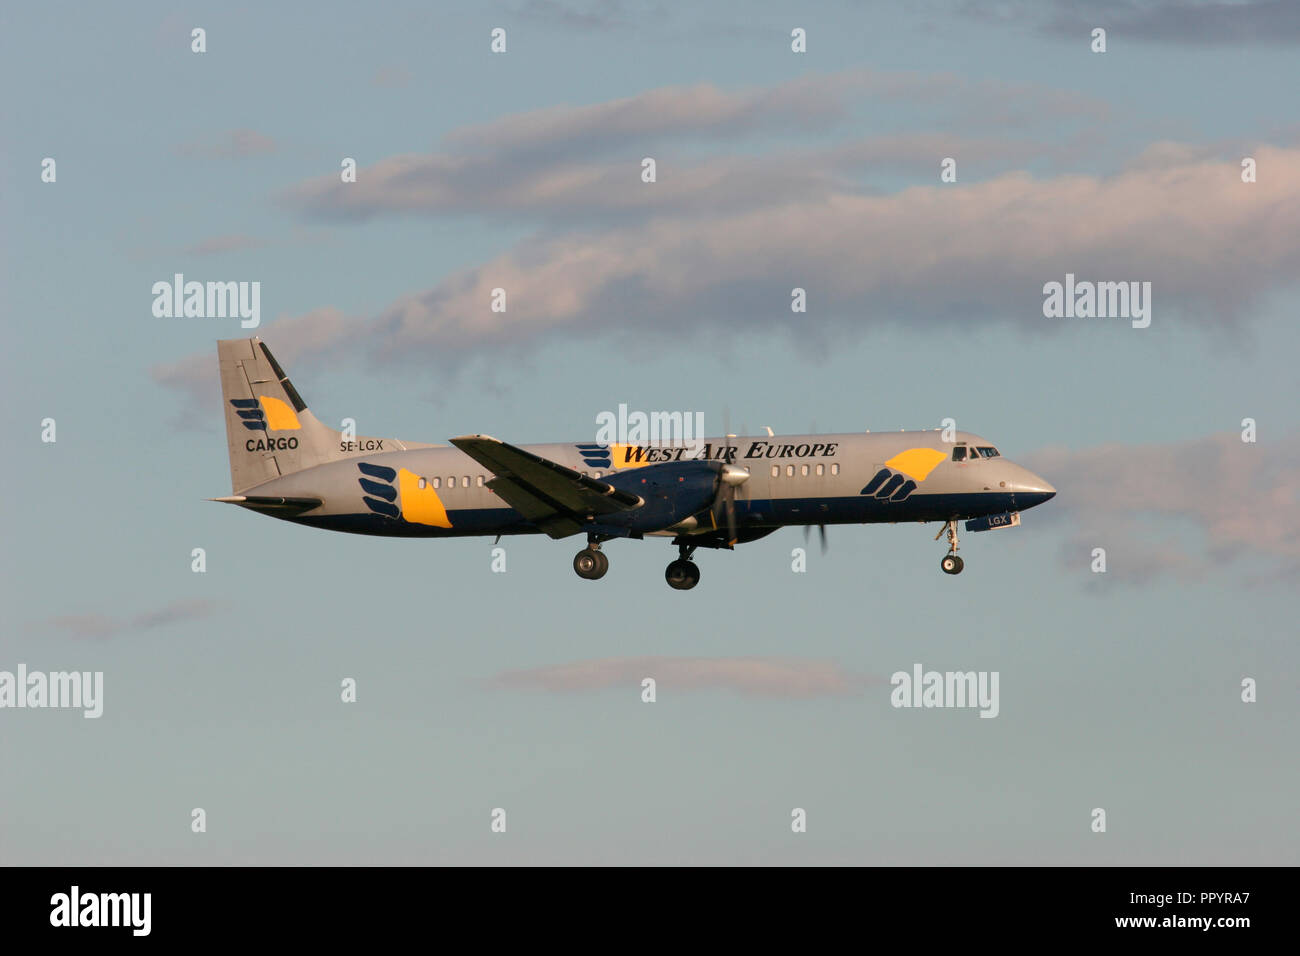 West Air Europe British Aerospace BAe ATP landing at London Stansted airport. - Stock Image